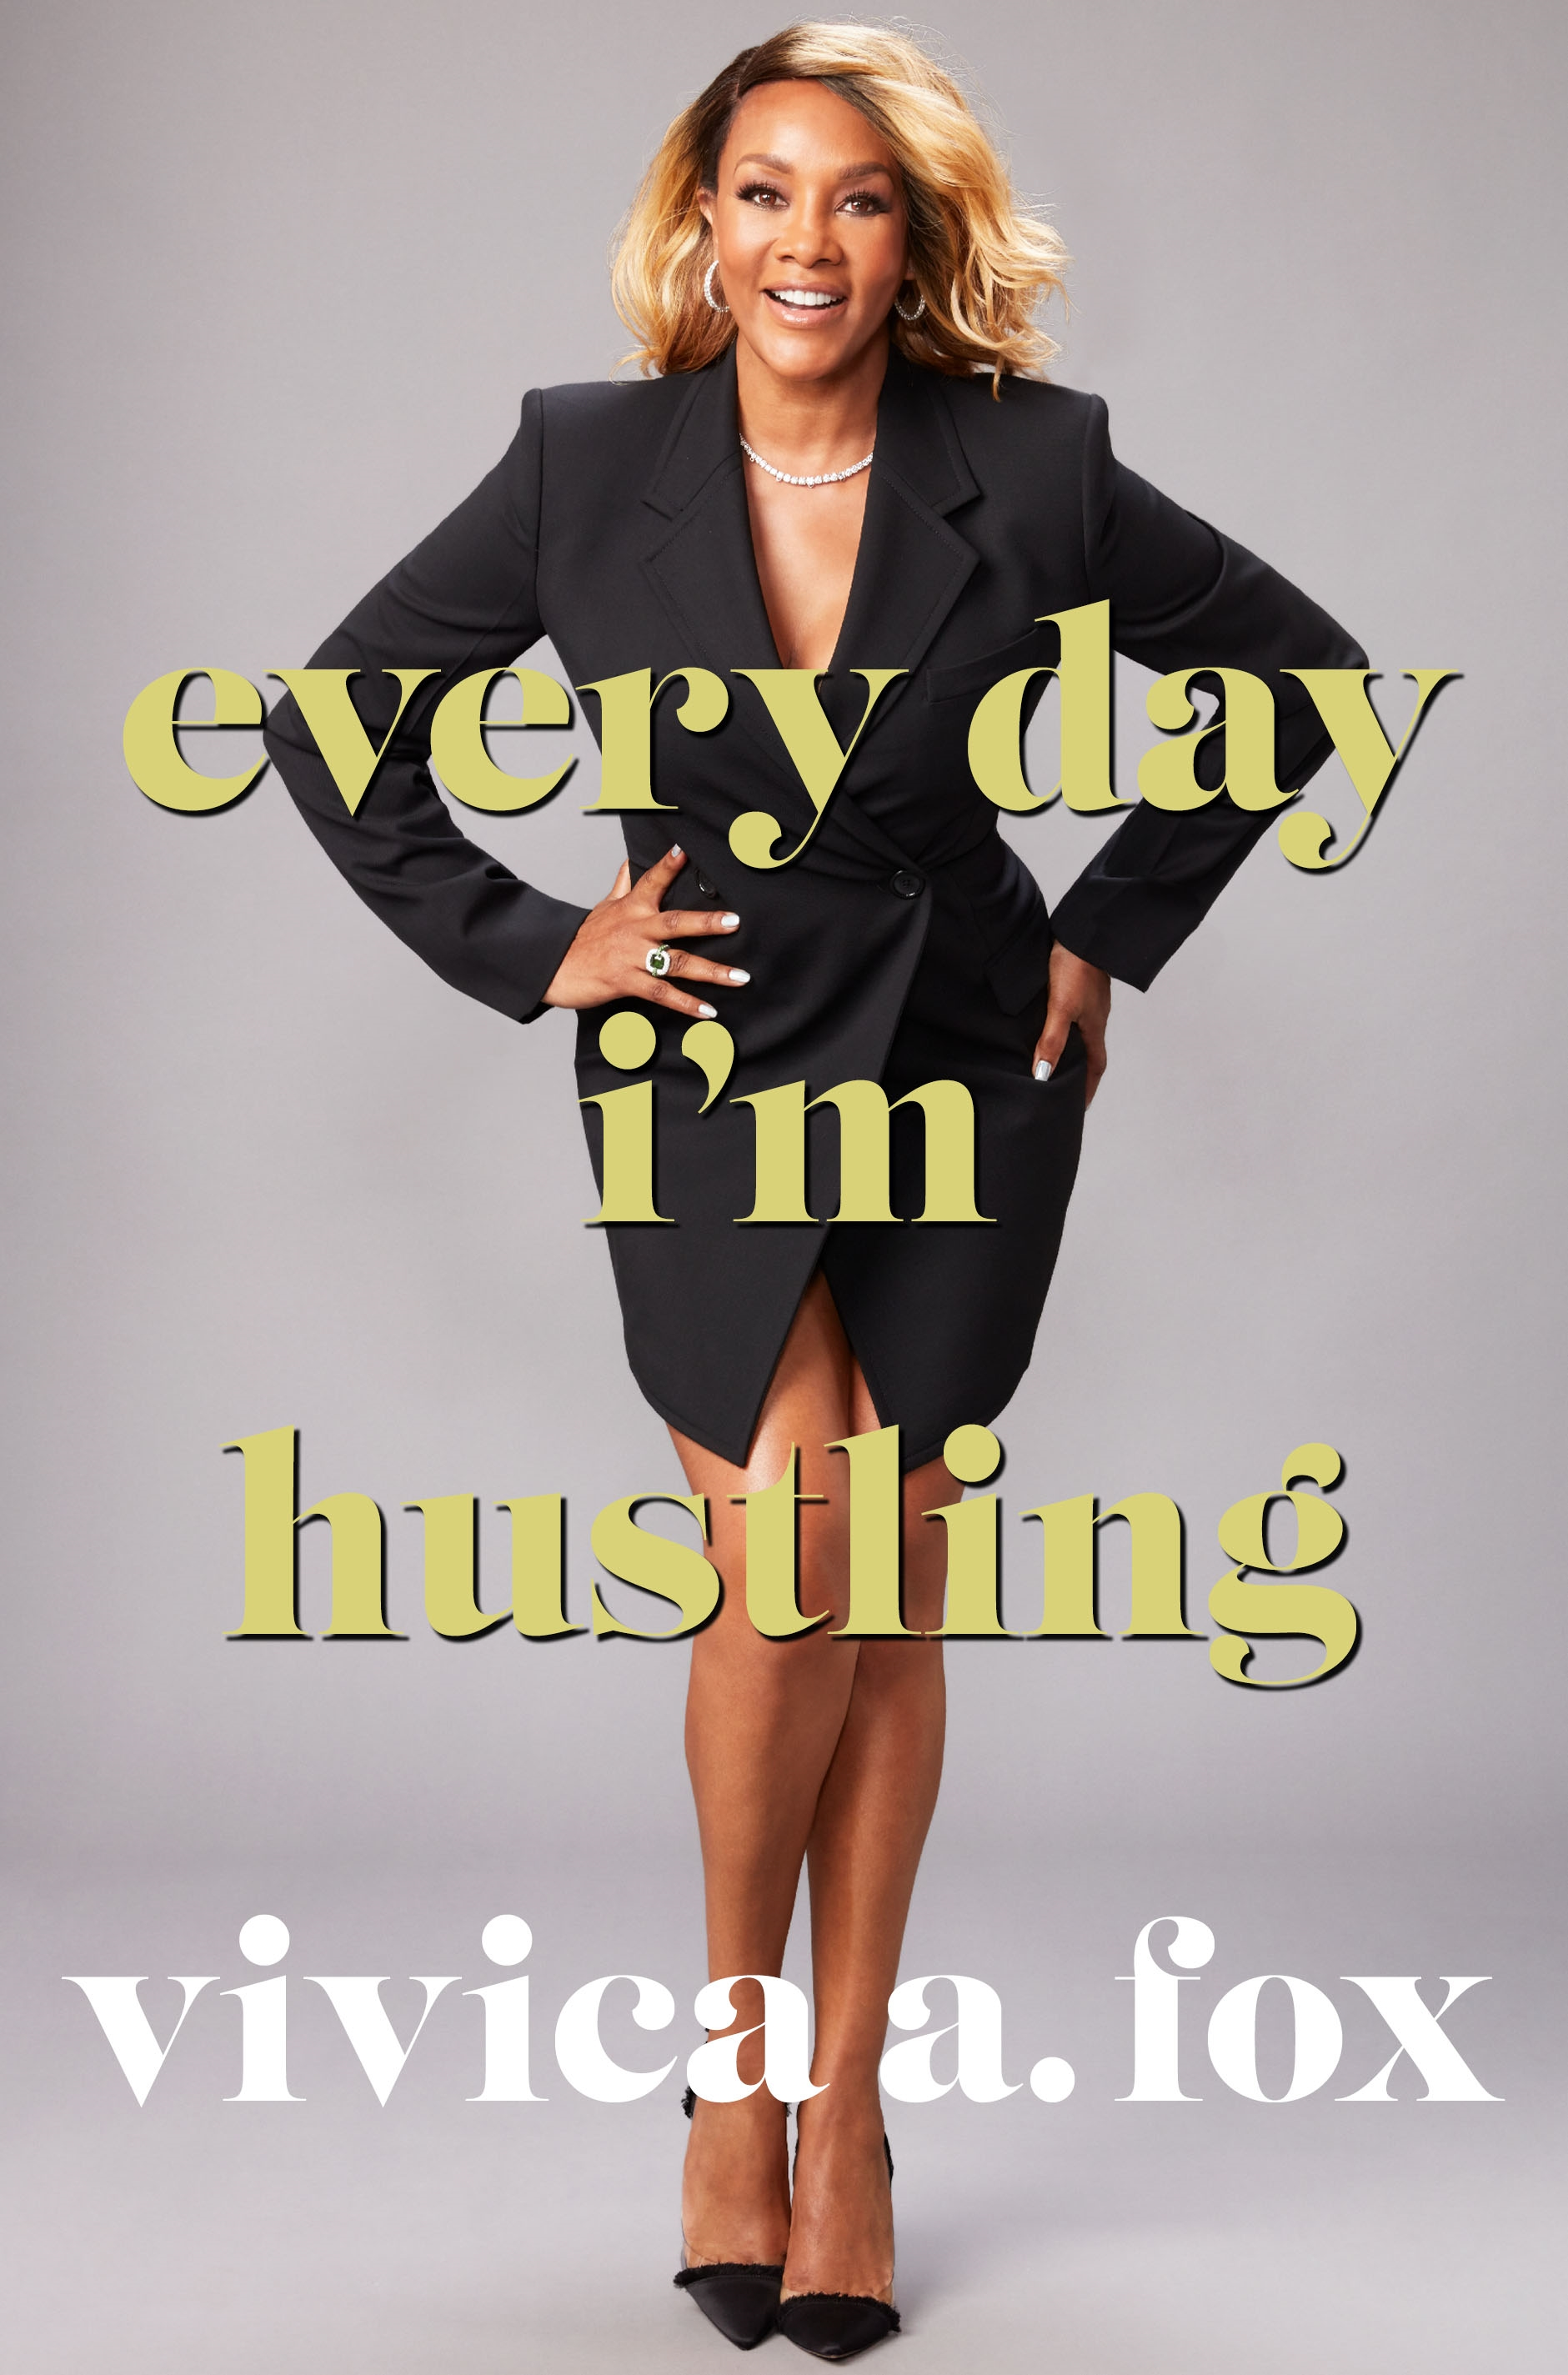 "<p>""Every Day I'm Hustling"" by Vivica A. Fox (Image: Courtesy{&nbsp;}St. Martin's Press)</p>"